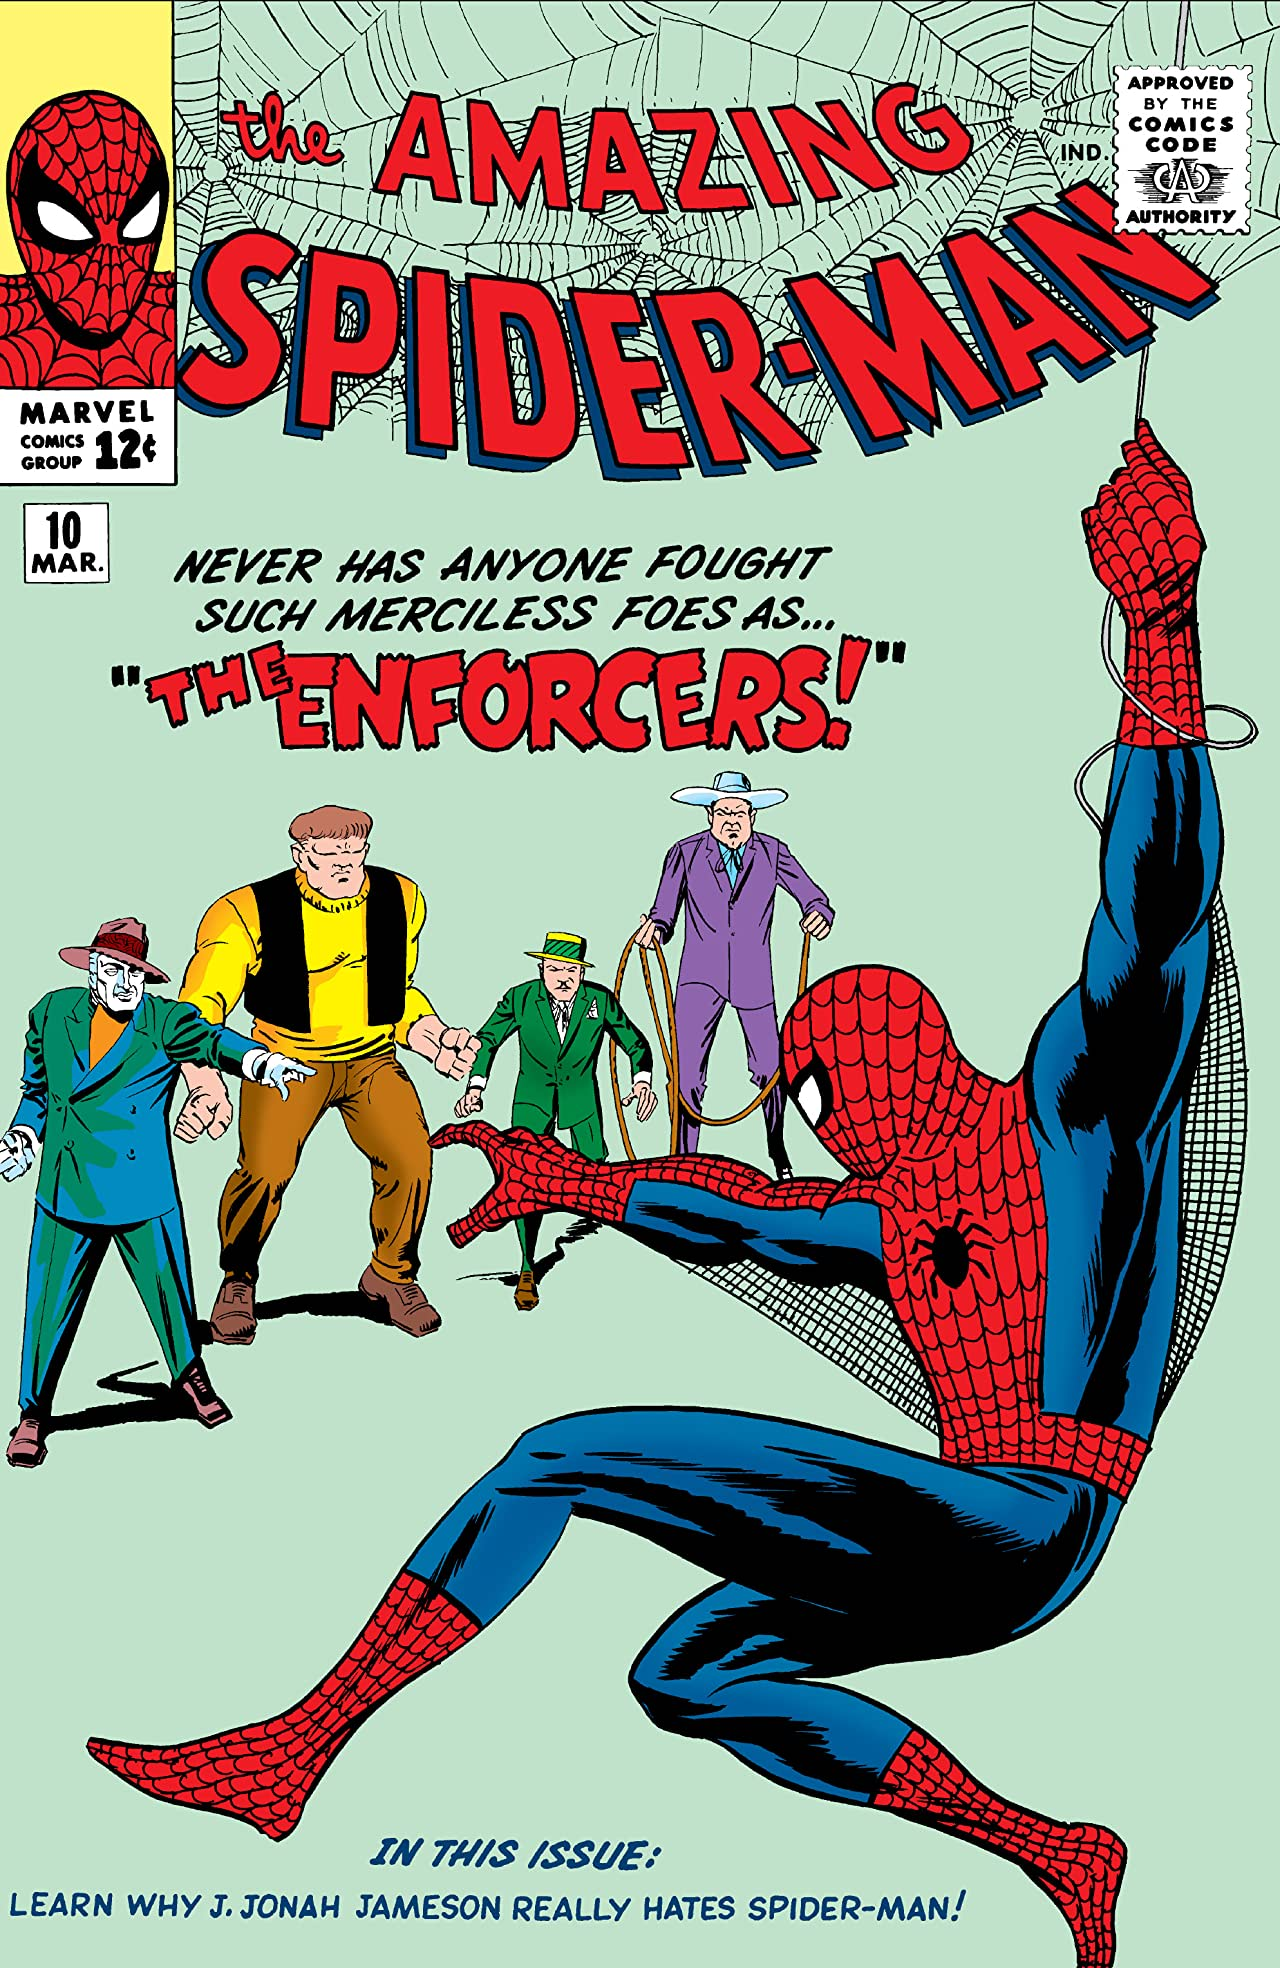 Amazing Spider-Man #010